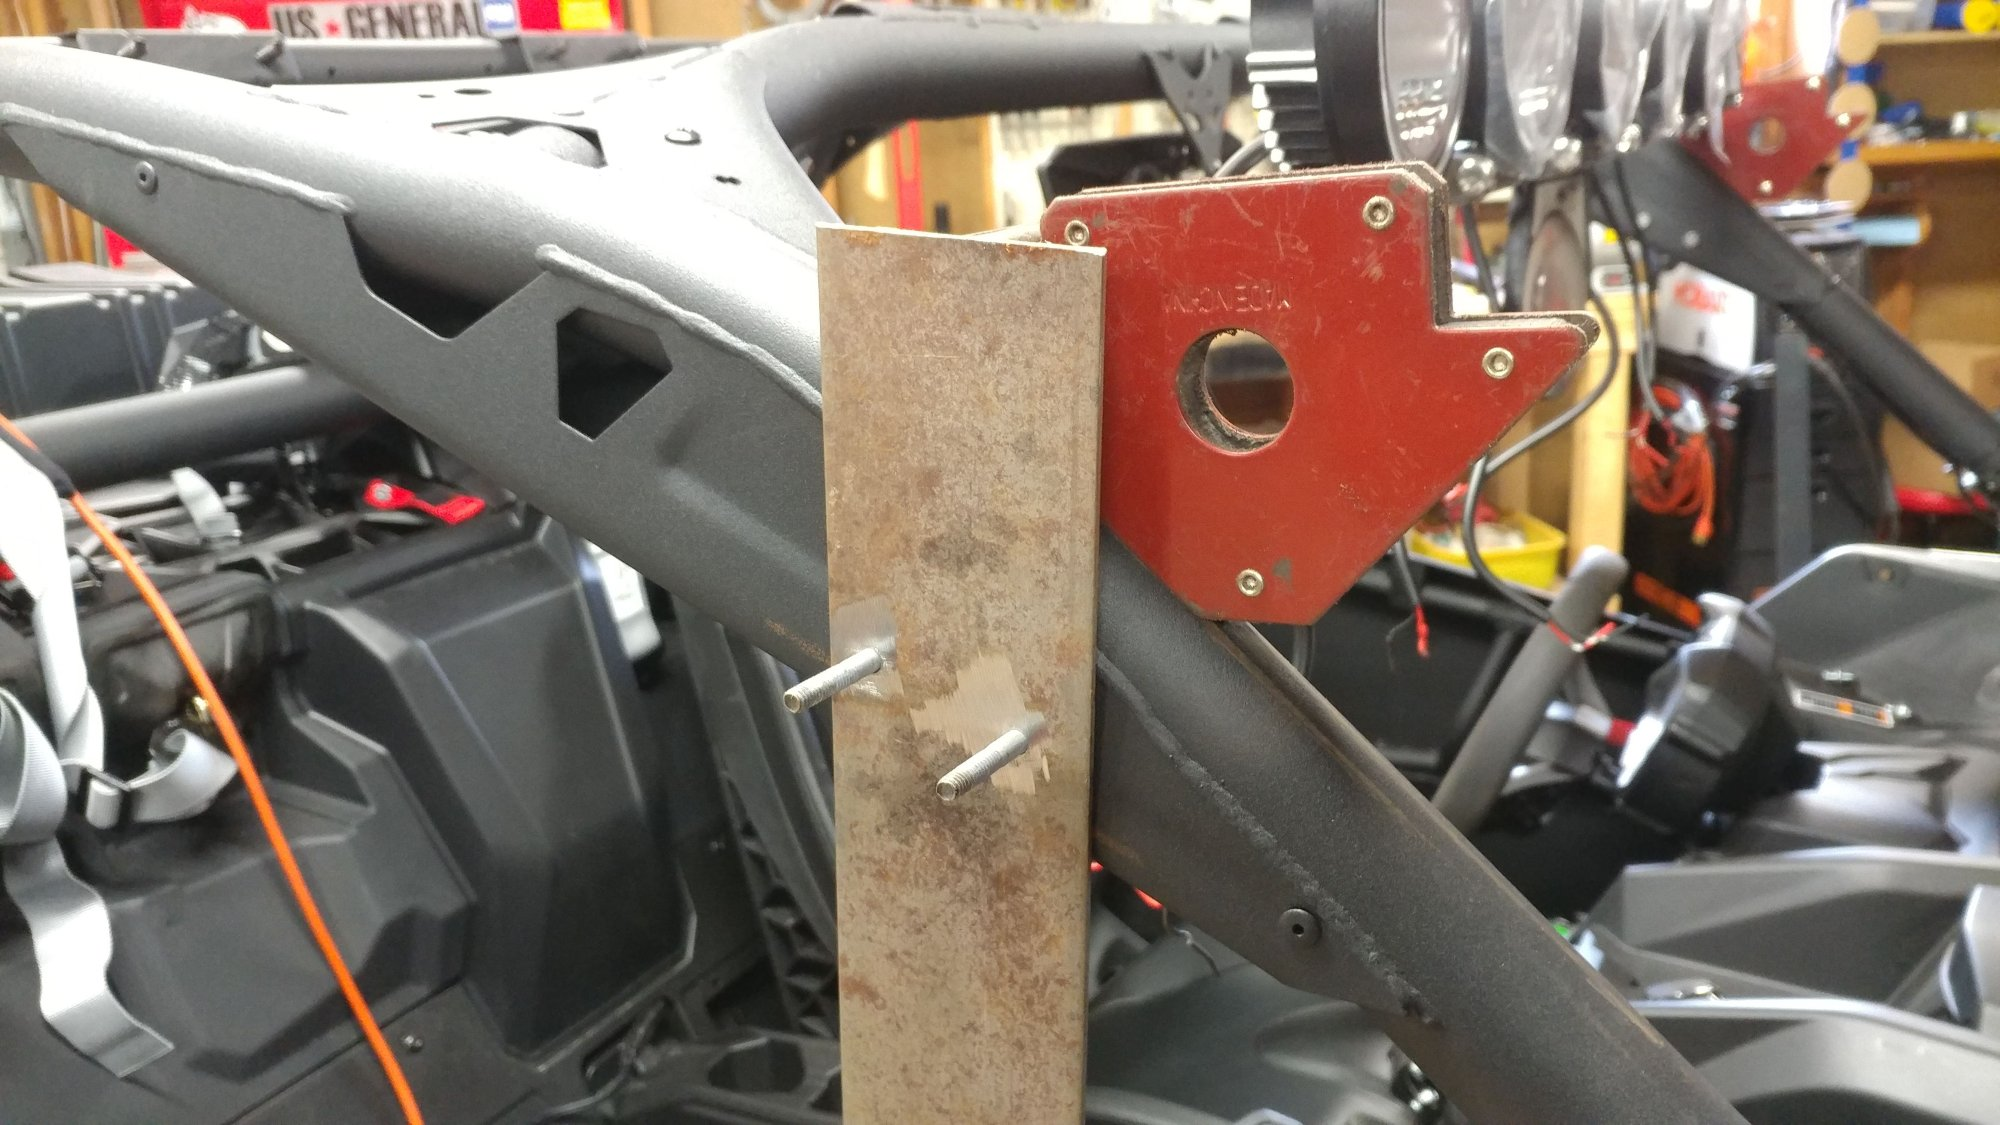 hight resolution of i got the length for the cross bar by mounting a piece of 3 16 plate on the a pillar on each side and measuring the distance